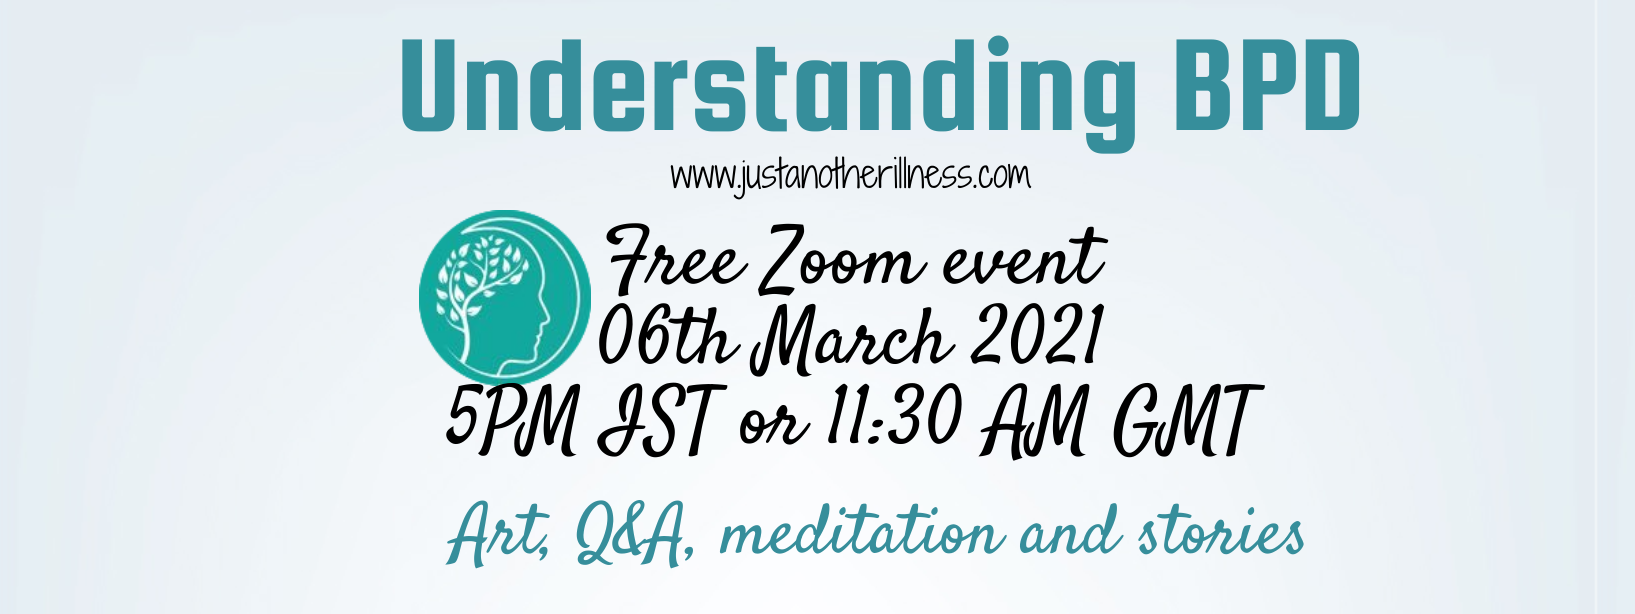 Upcoming Free Event! Understanding Borderline Personality Disorder